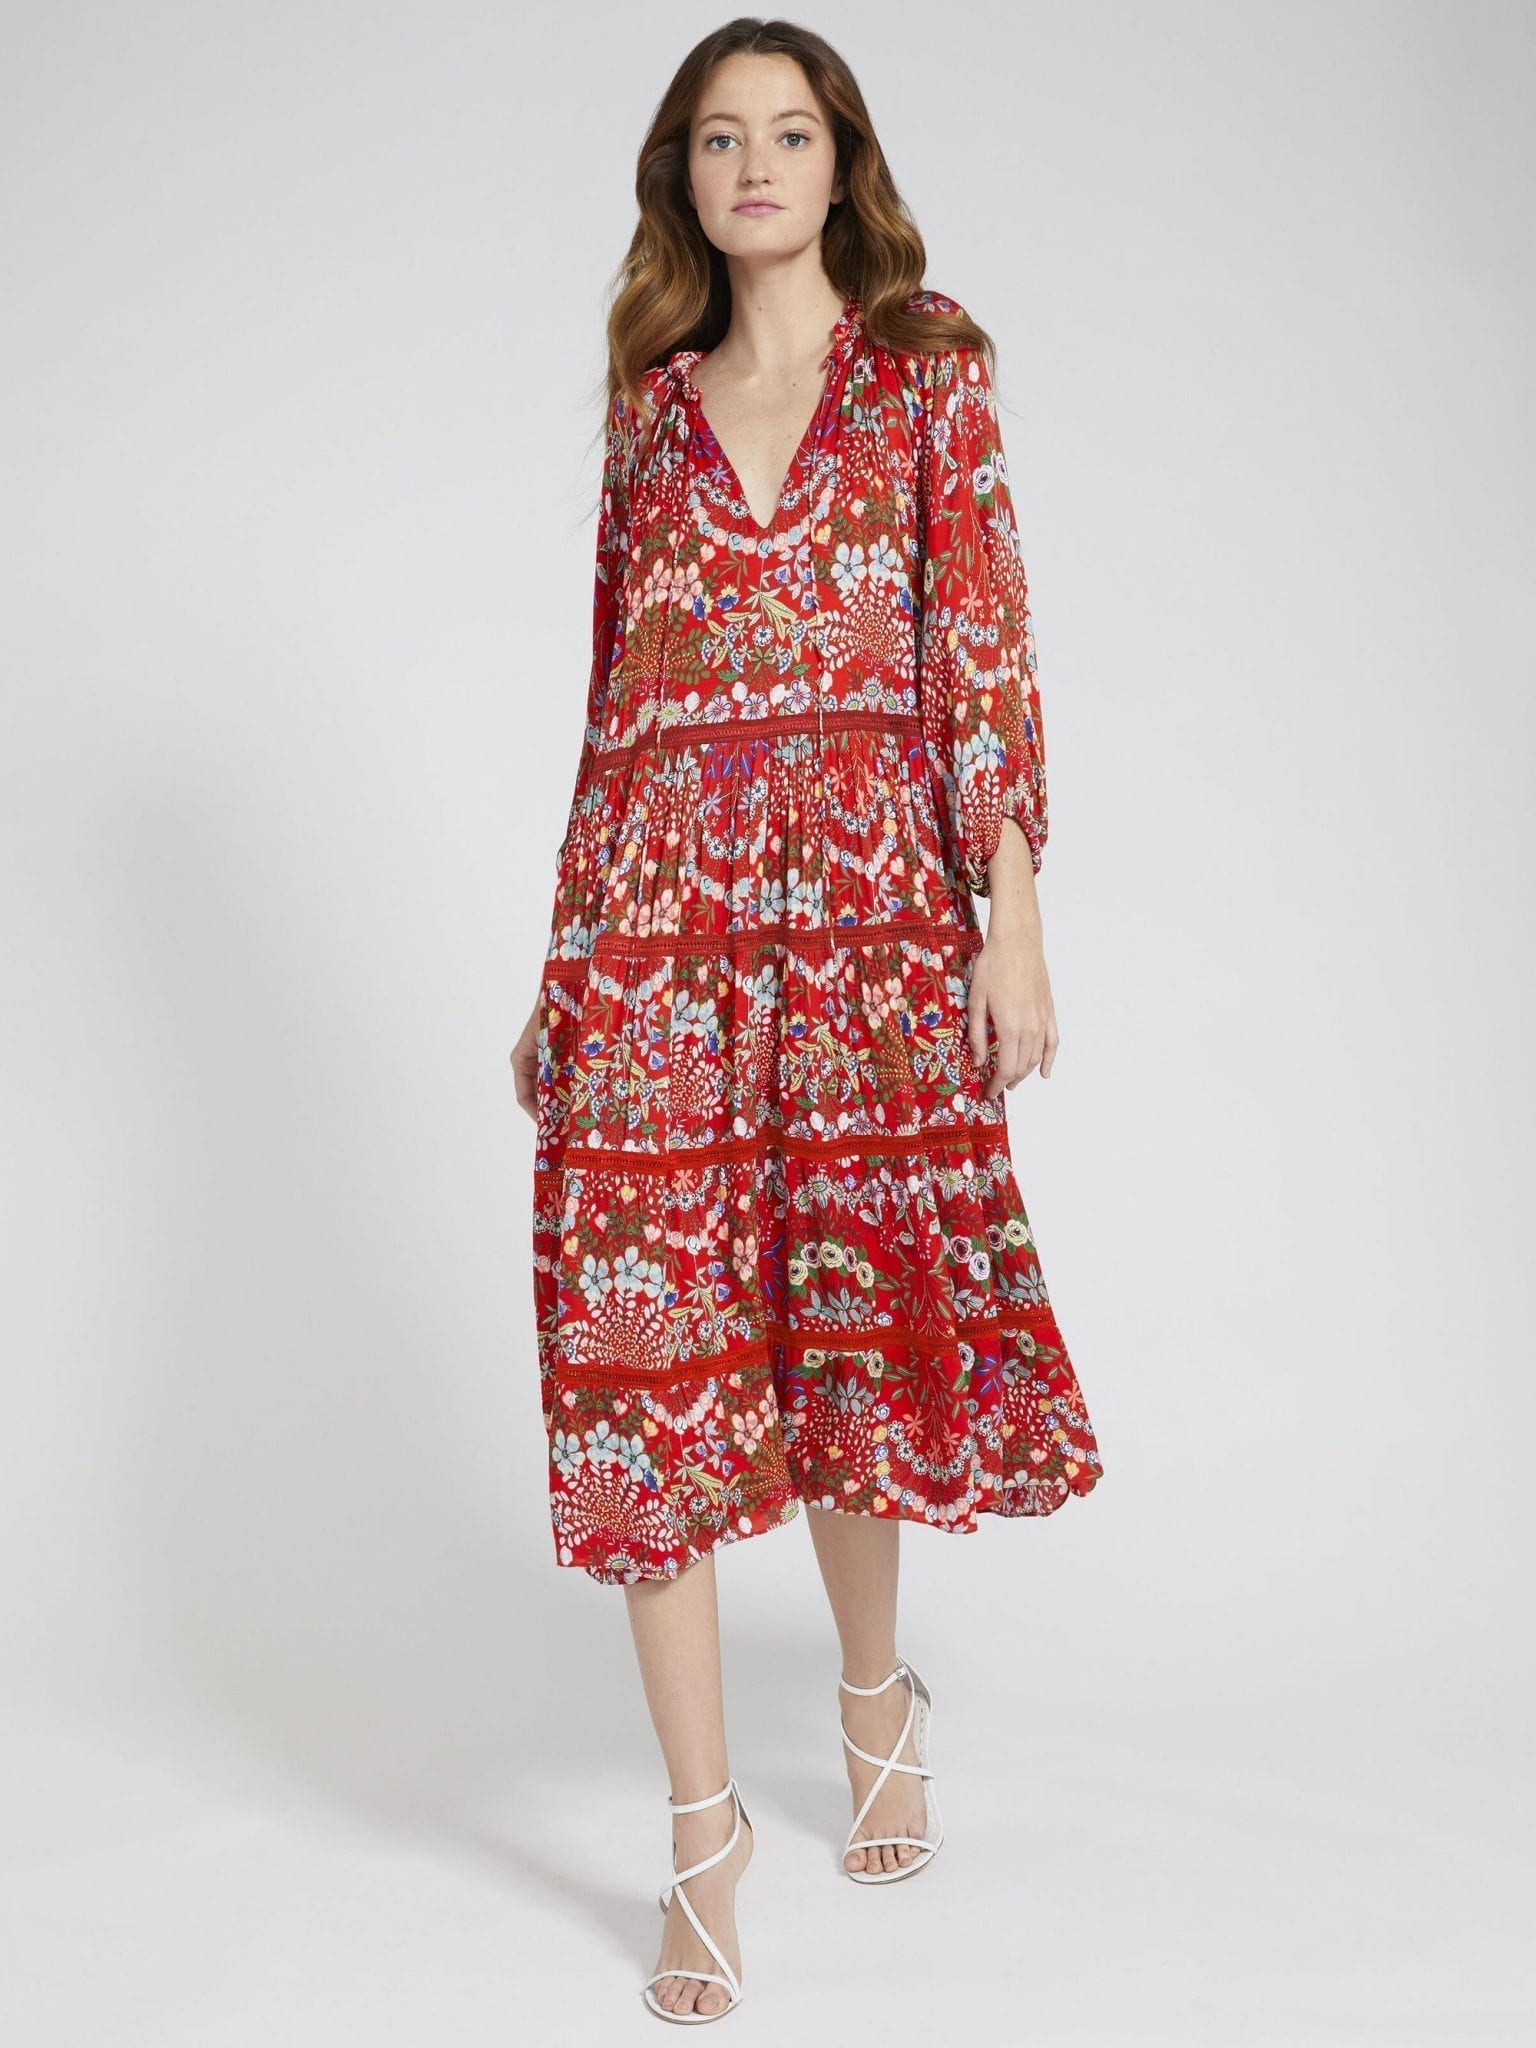 ALICE AND OLIVIA Layla Floral Ruffle Midi Dress